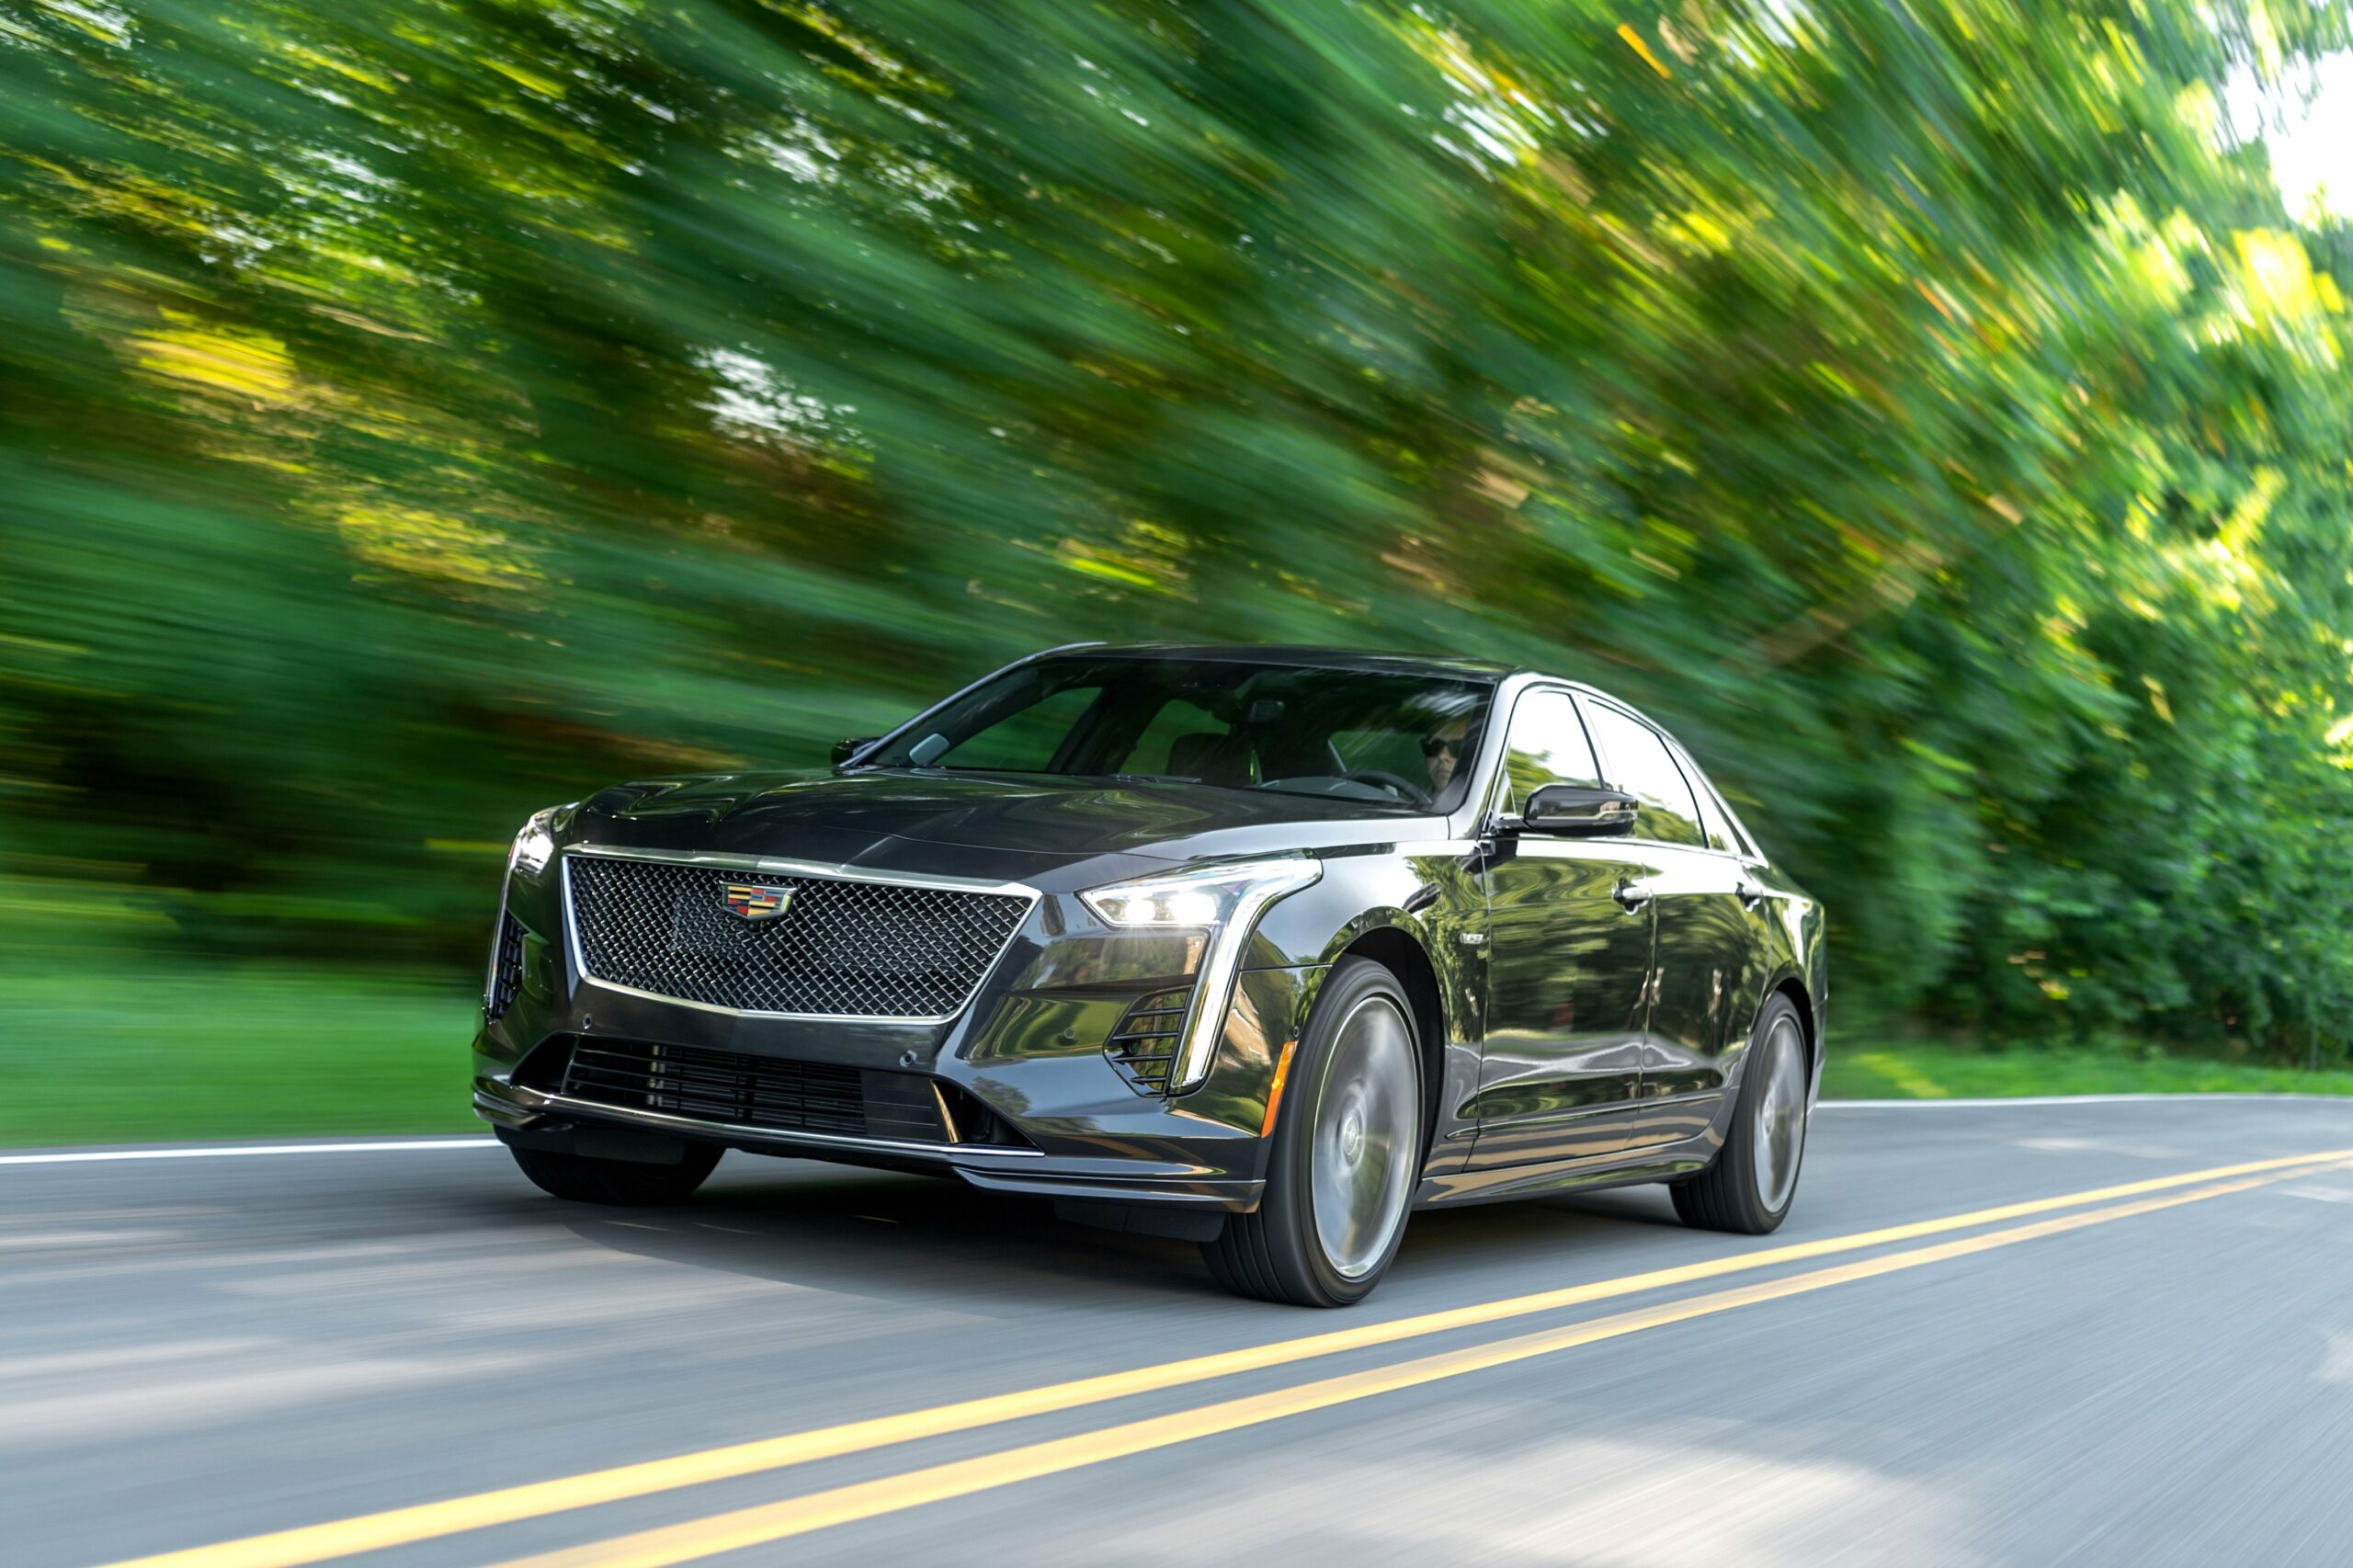 2020 cadillac ct6 youtube Prices